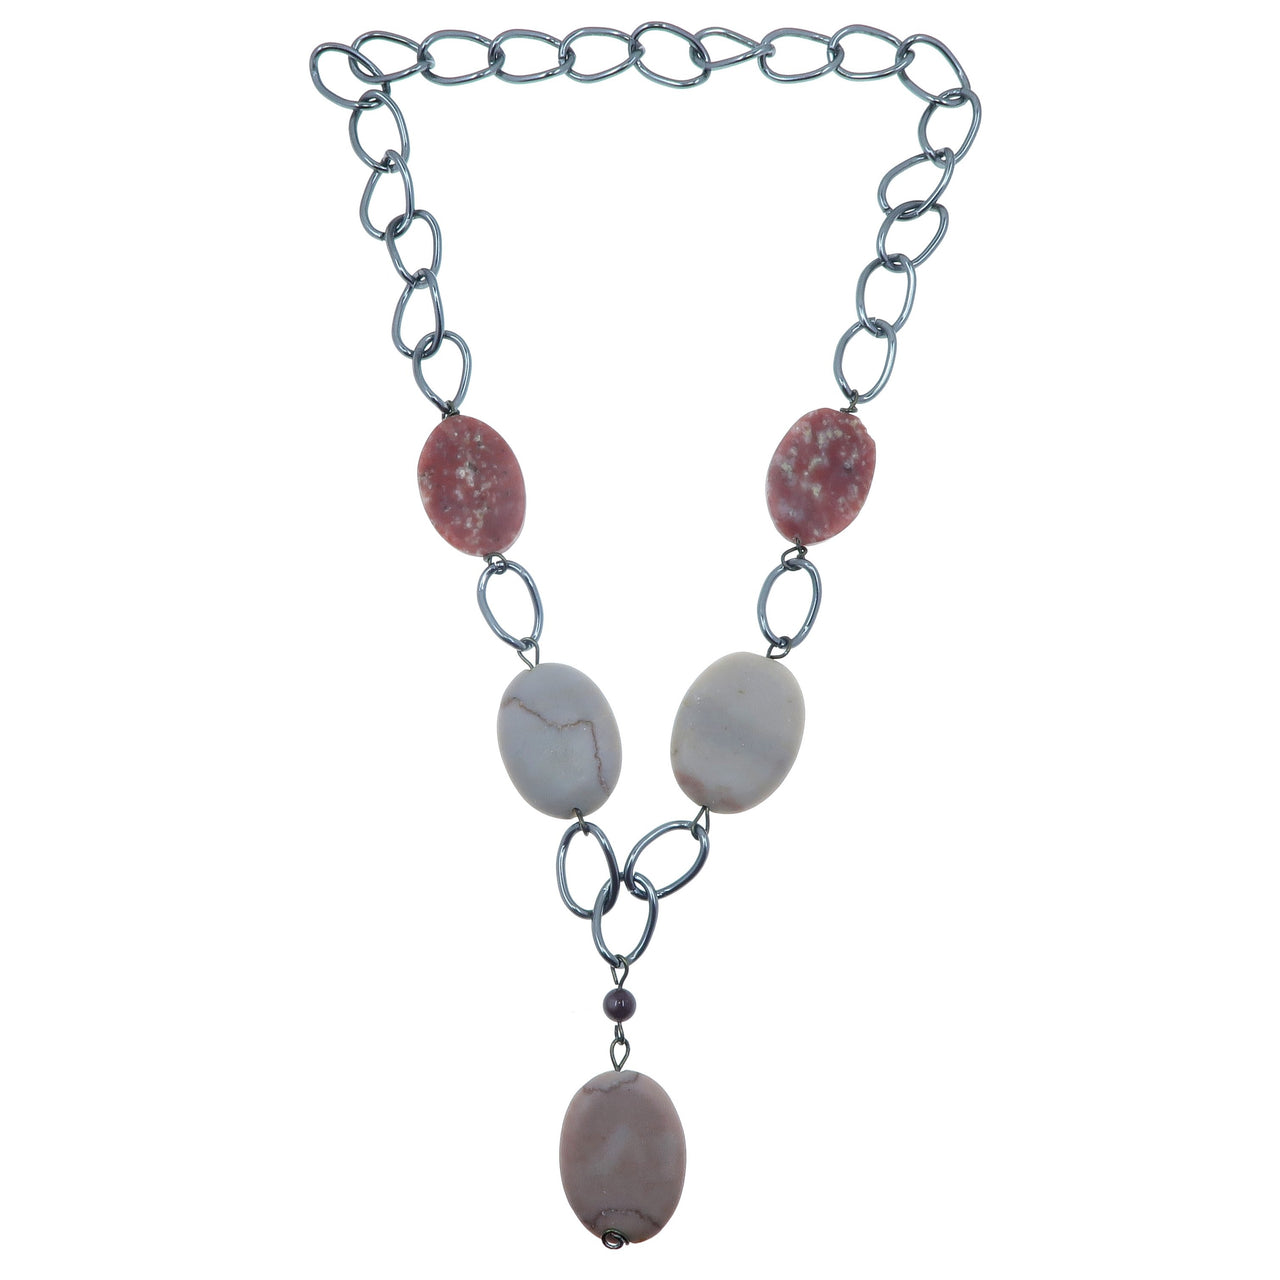 "Lepidolite Necklace 24"" Specialty One-of-Kind Claspless Gunmetal Chain Pink Stone Marble S01"